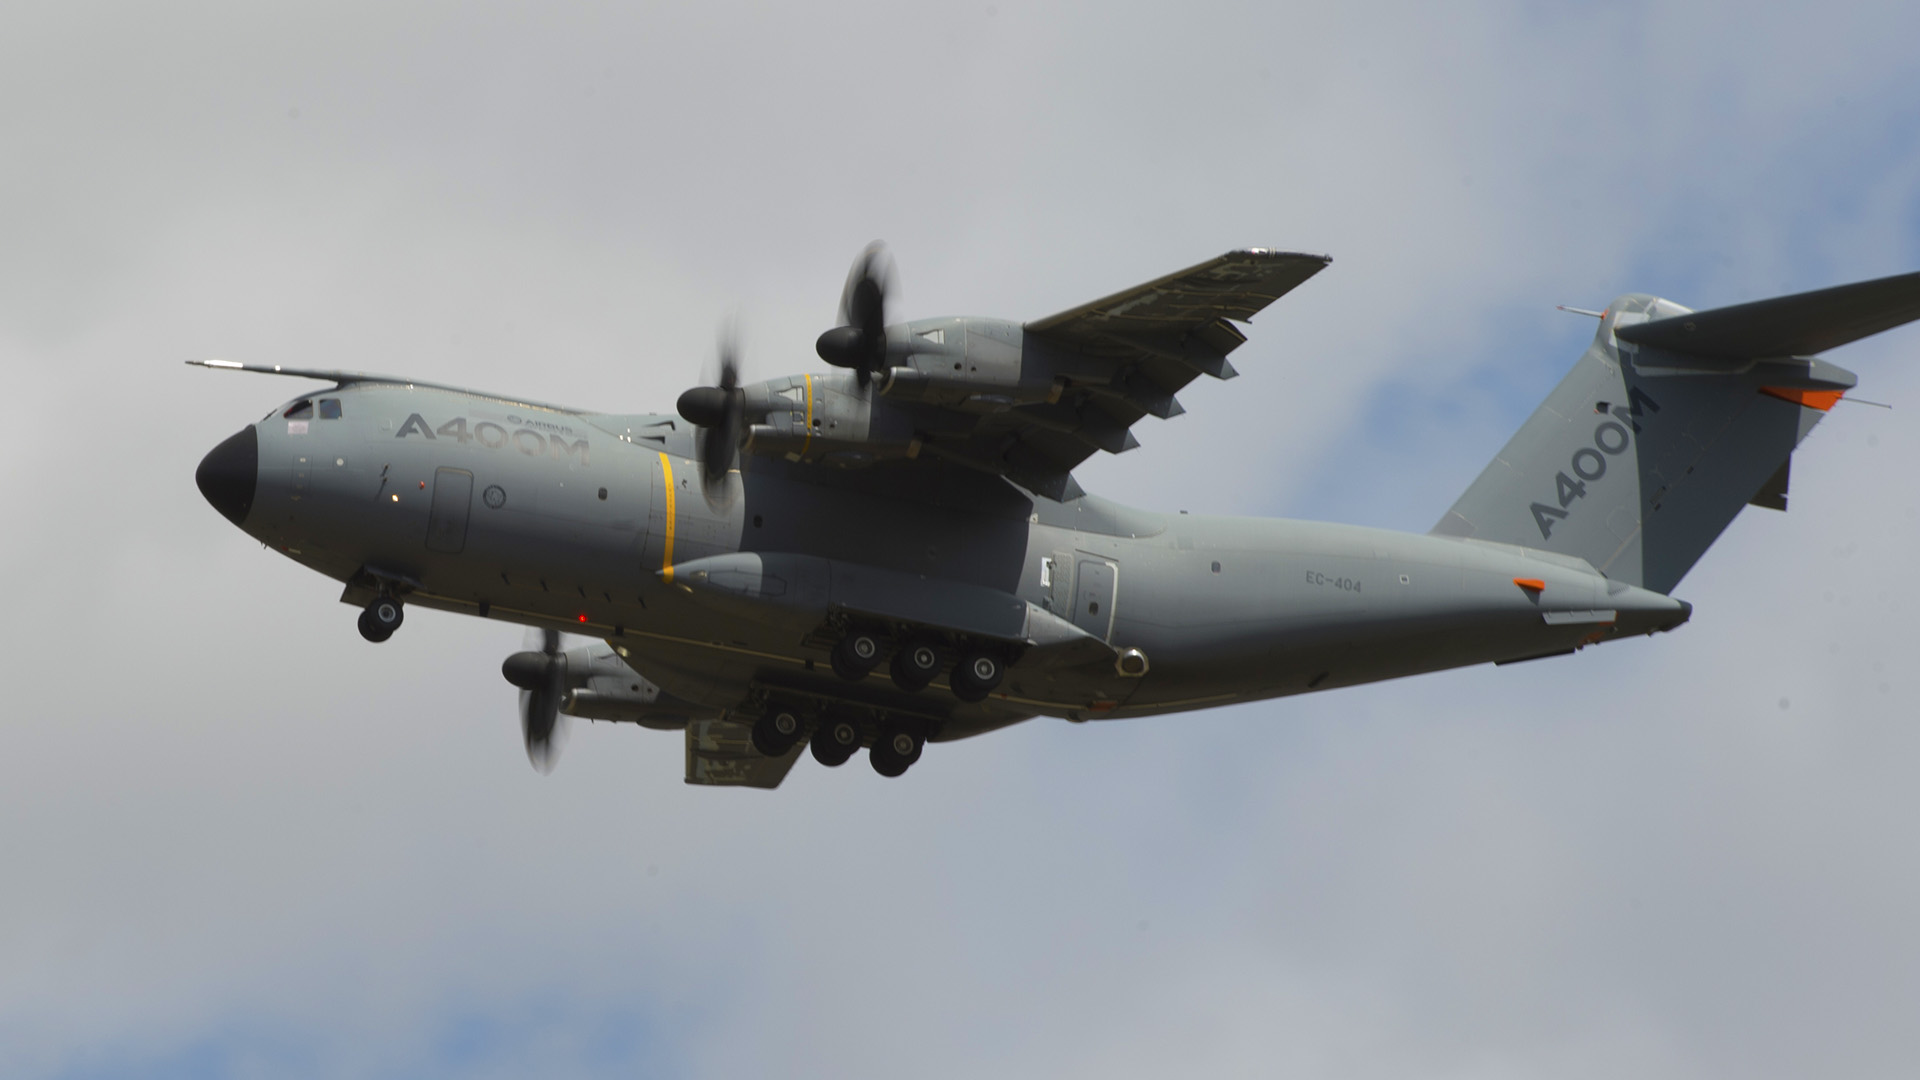 Airbus A400M in flight